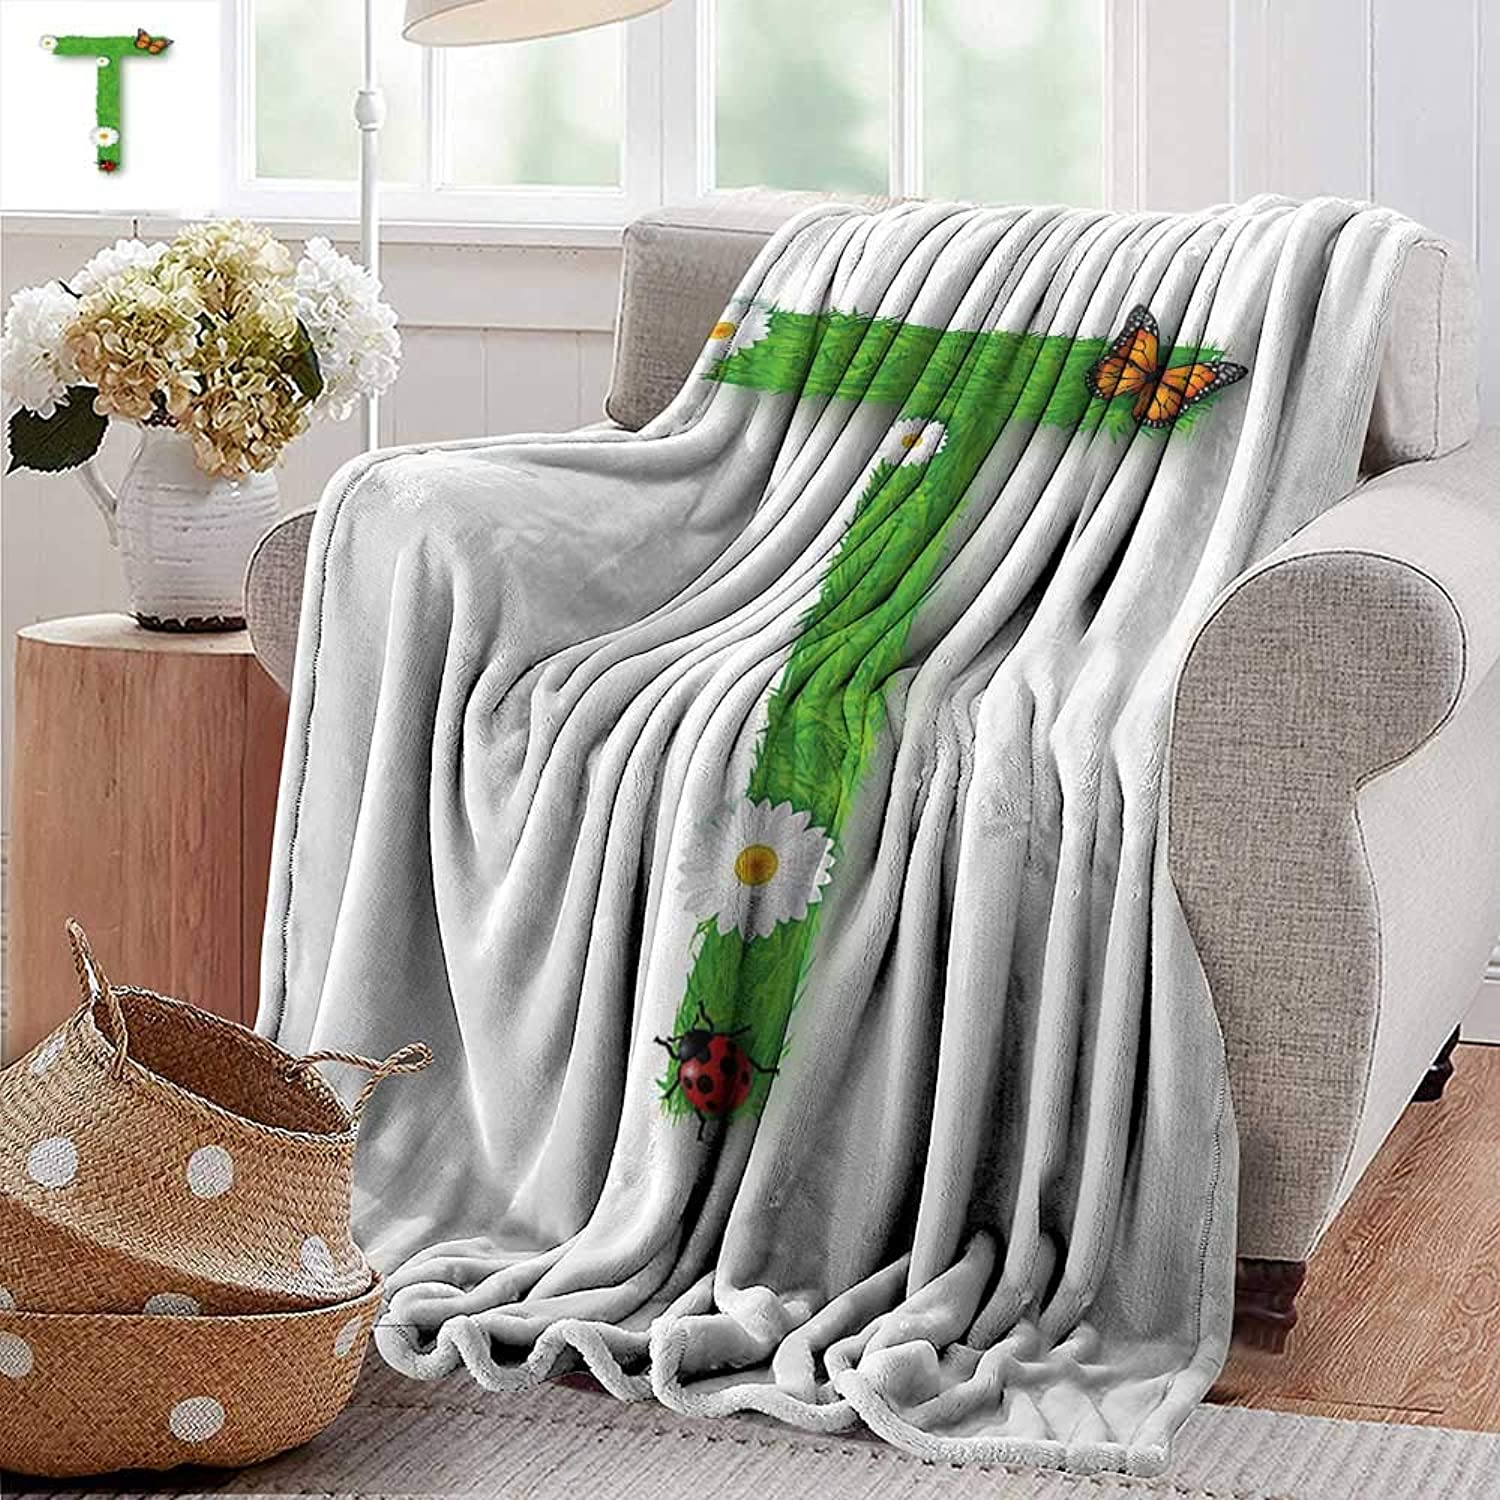 PearlRolan Picnic Blanket,Letter T,Caps T with Flourishing Fragrance Botanical Design and Ladybug Girls Room,Green Multicolor,colorful   Home, Couch, Outdoor, Travel Use 50 x60